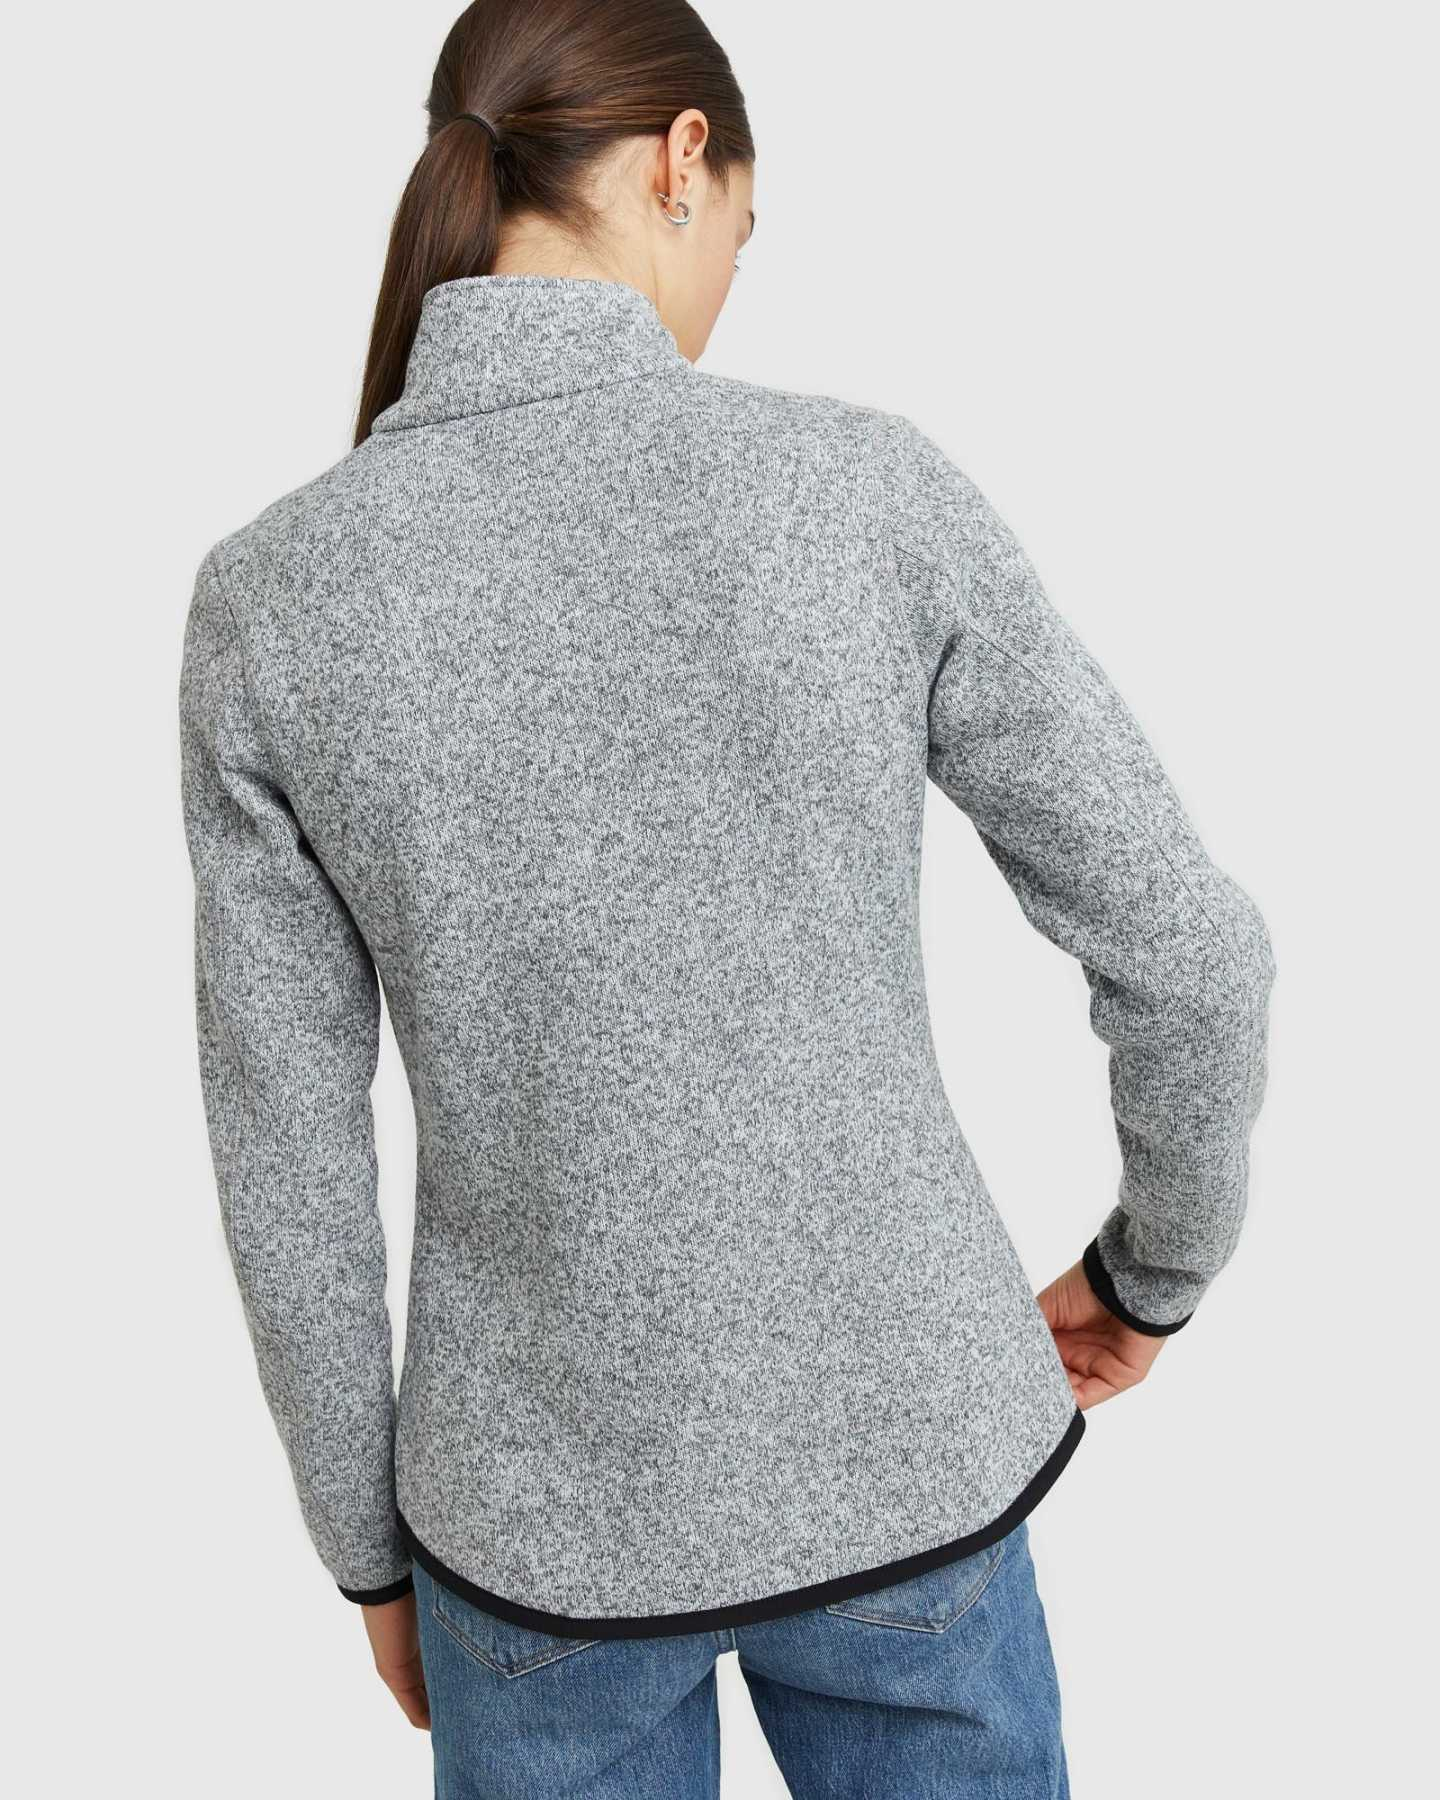 Full Zip Sweater Fleece Jacket - 13649938350191